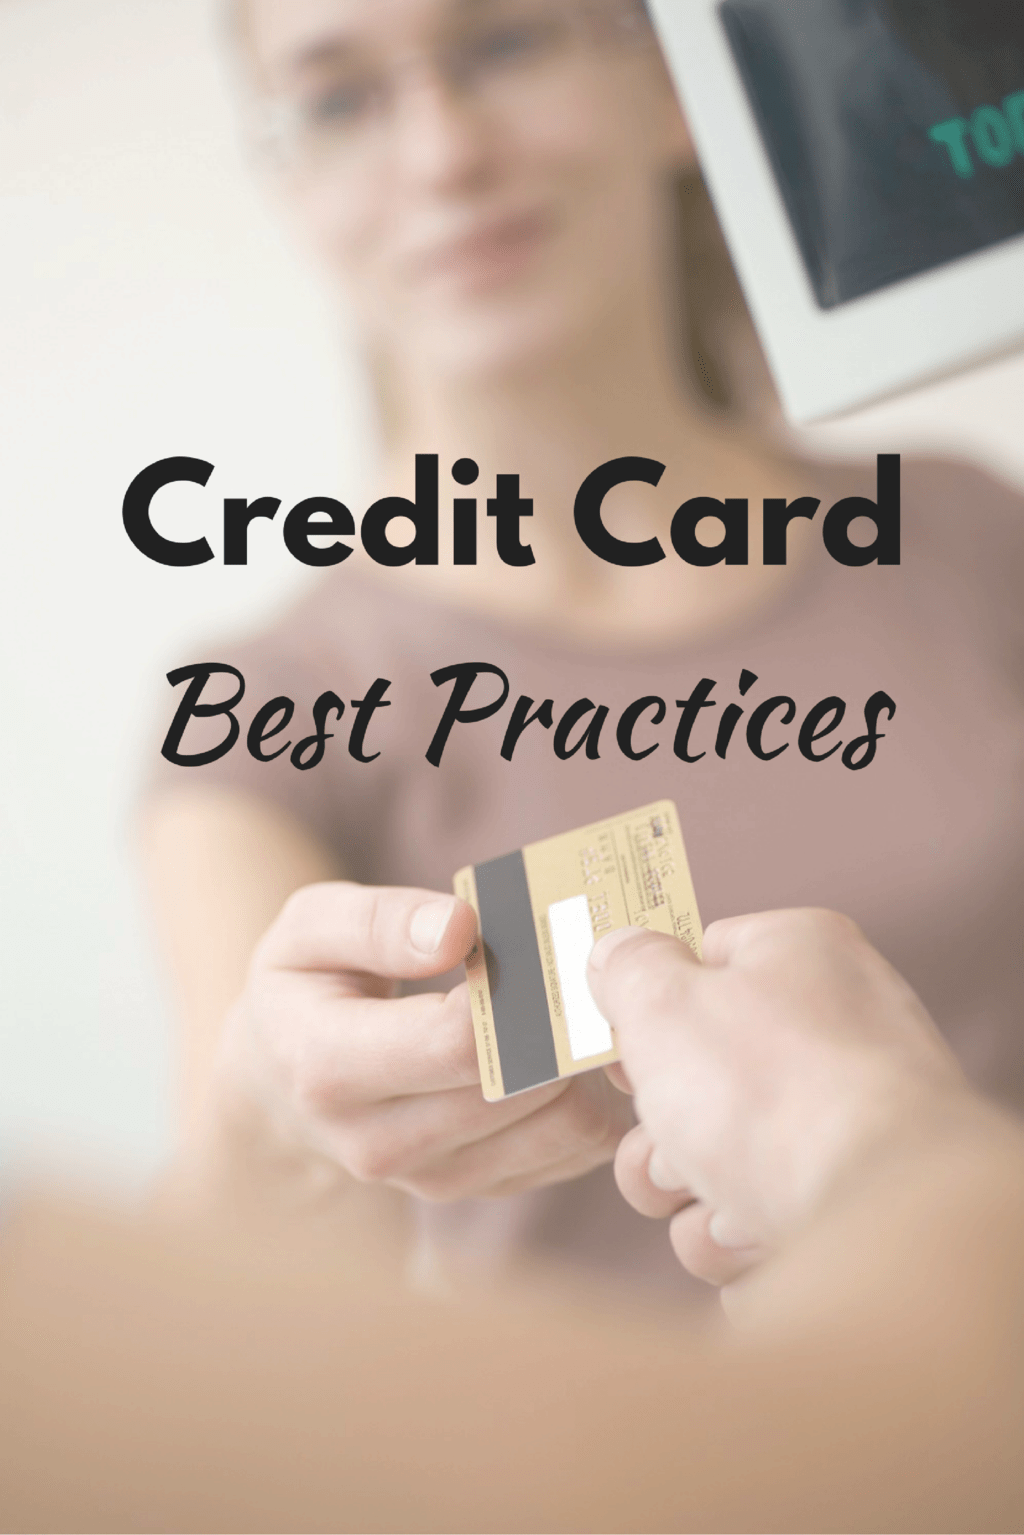 These credit card best practices will keep you out of financial trouble and help you build your credit instead for a healthier financial future. #creditcard #finances #creditcardadvice #financialliteracy via @wondermomwannab